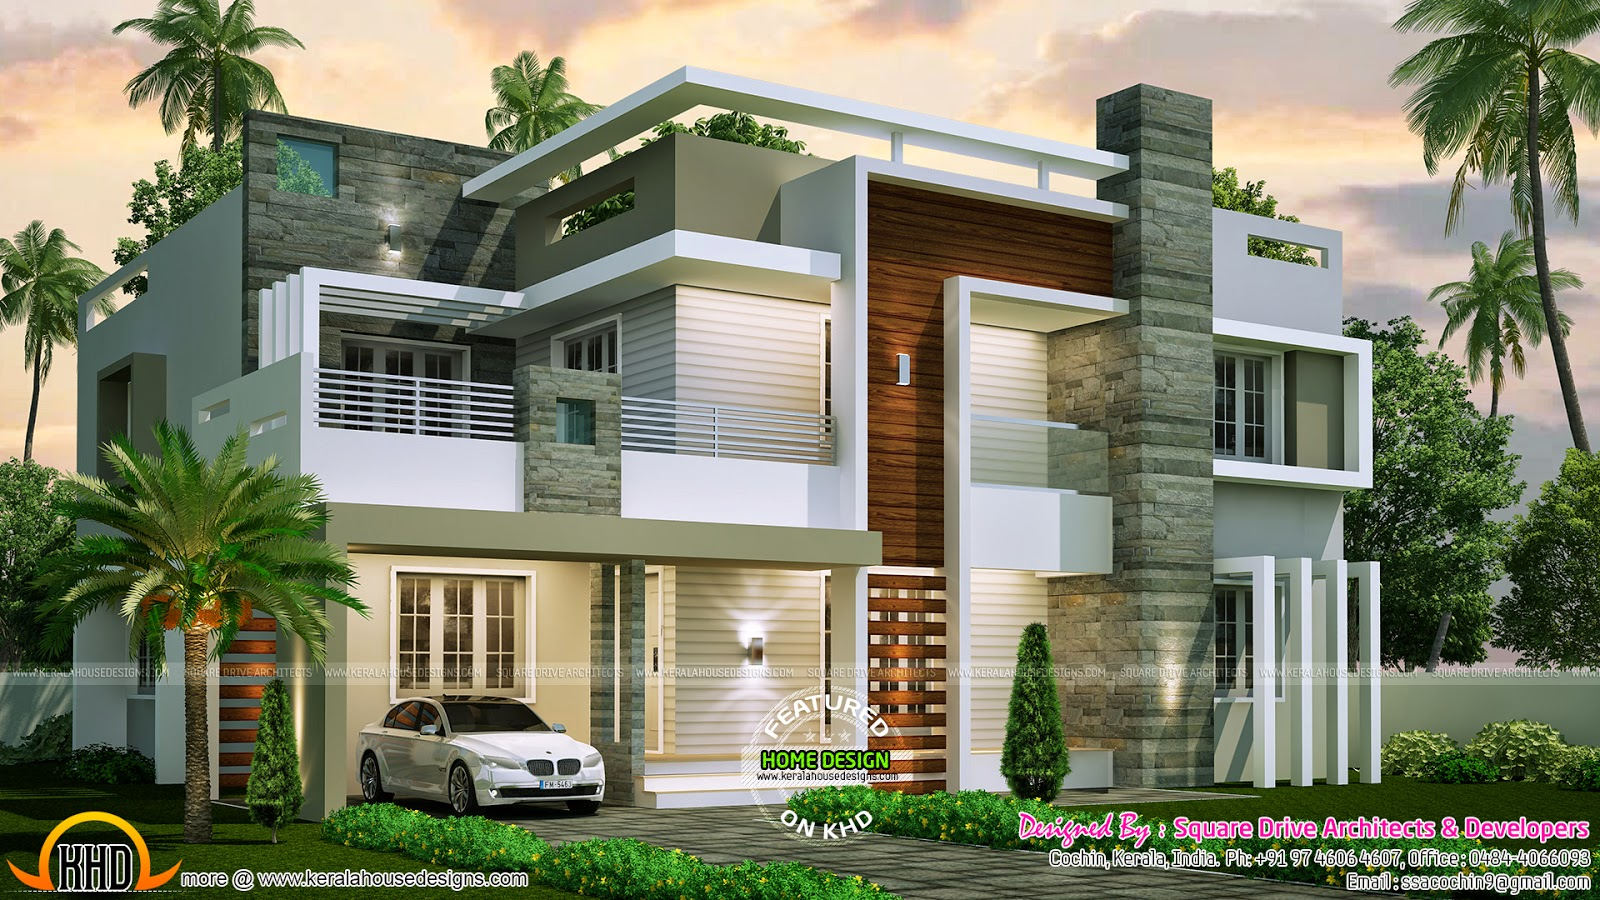 4 bedroom contemporary home design kerala home design Contemporary house style